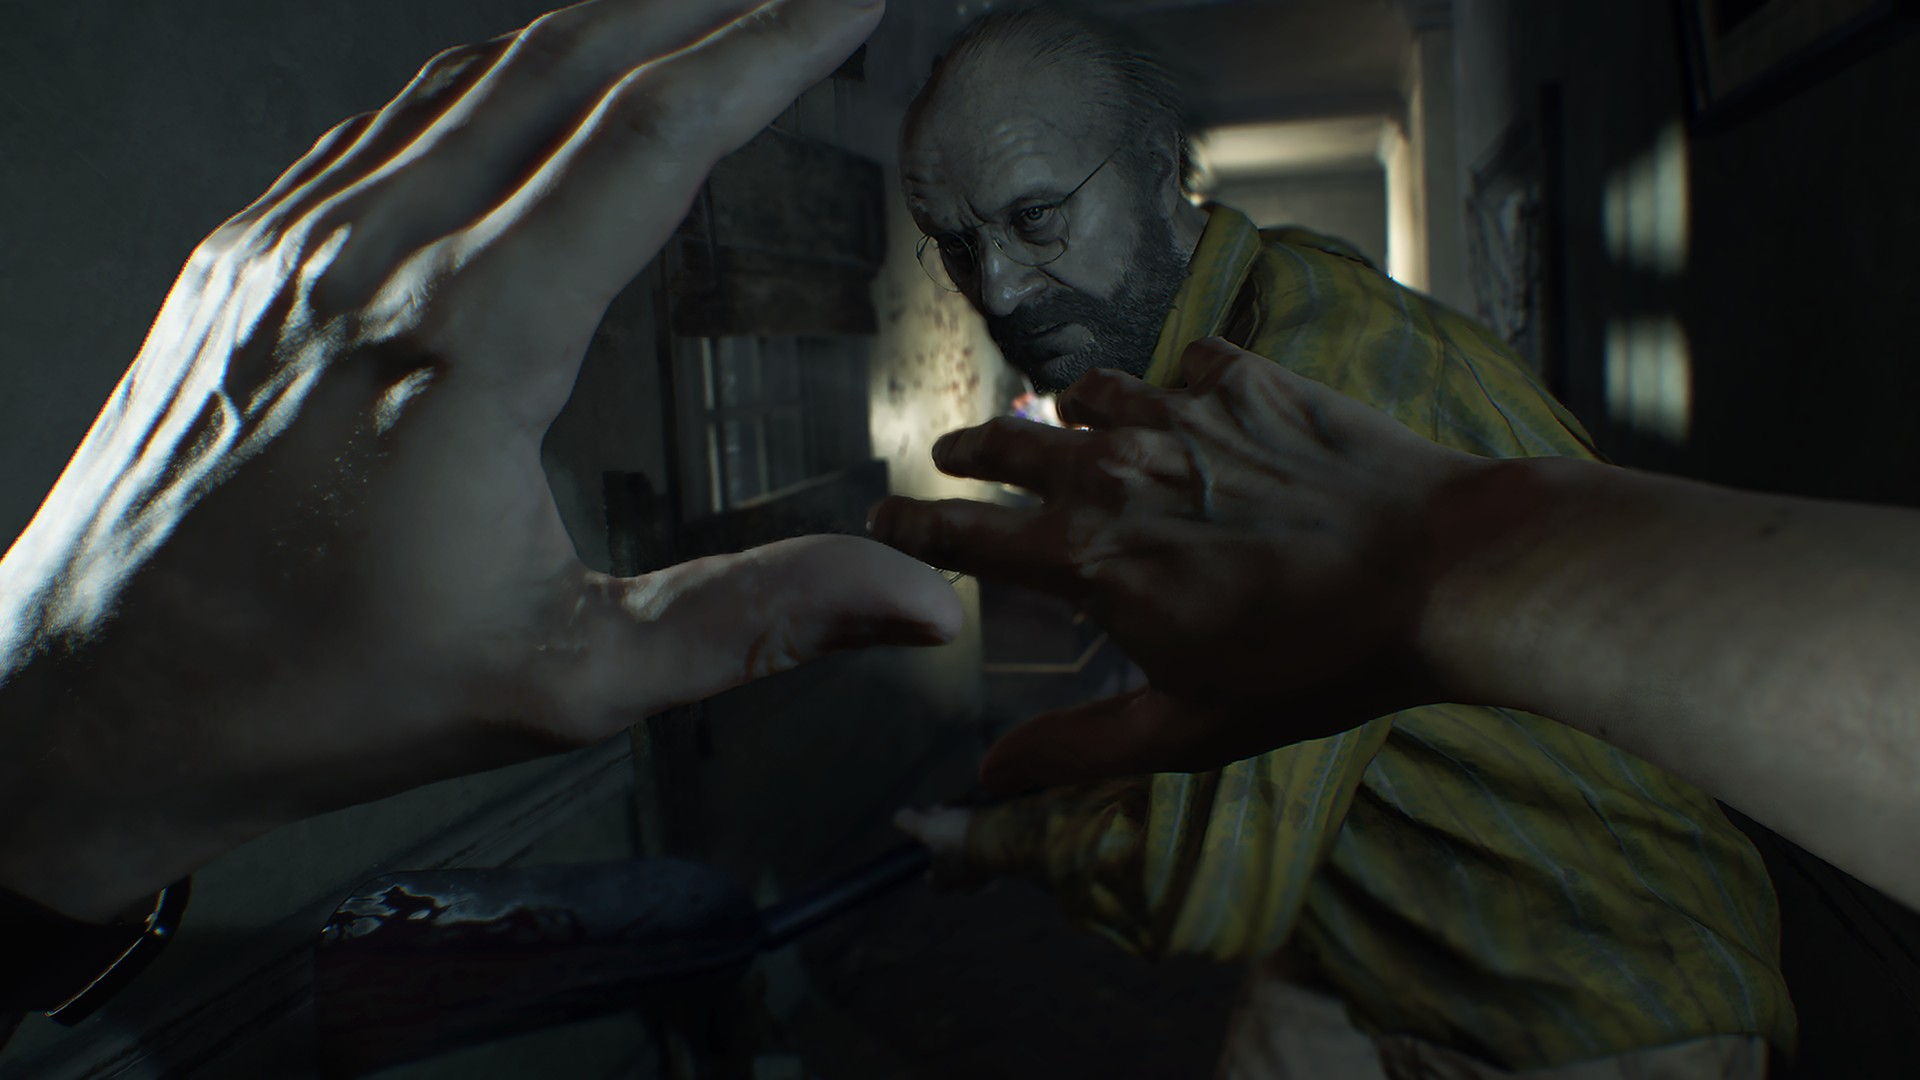 Capcom is working on 'numerous' unannounced titles | TechRadar